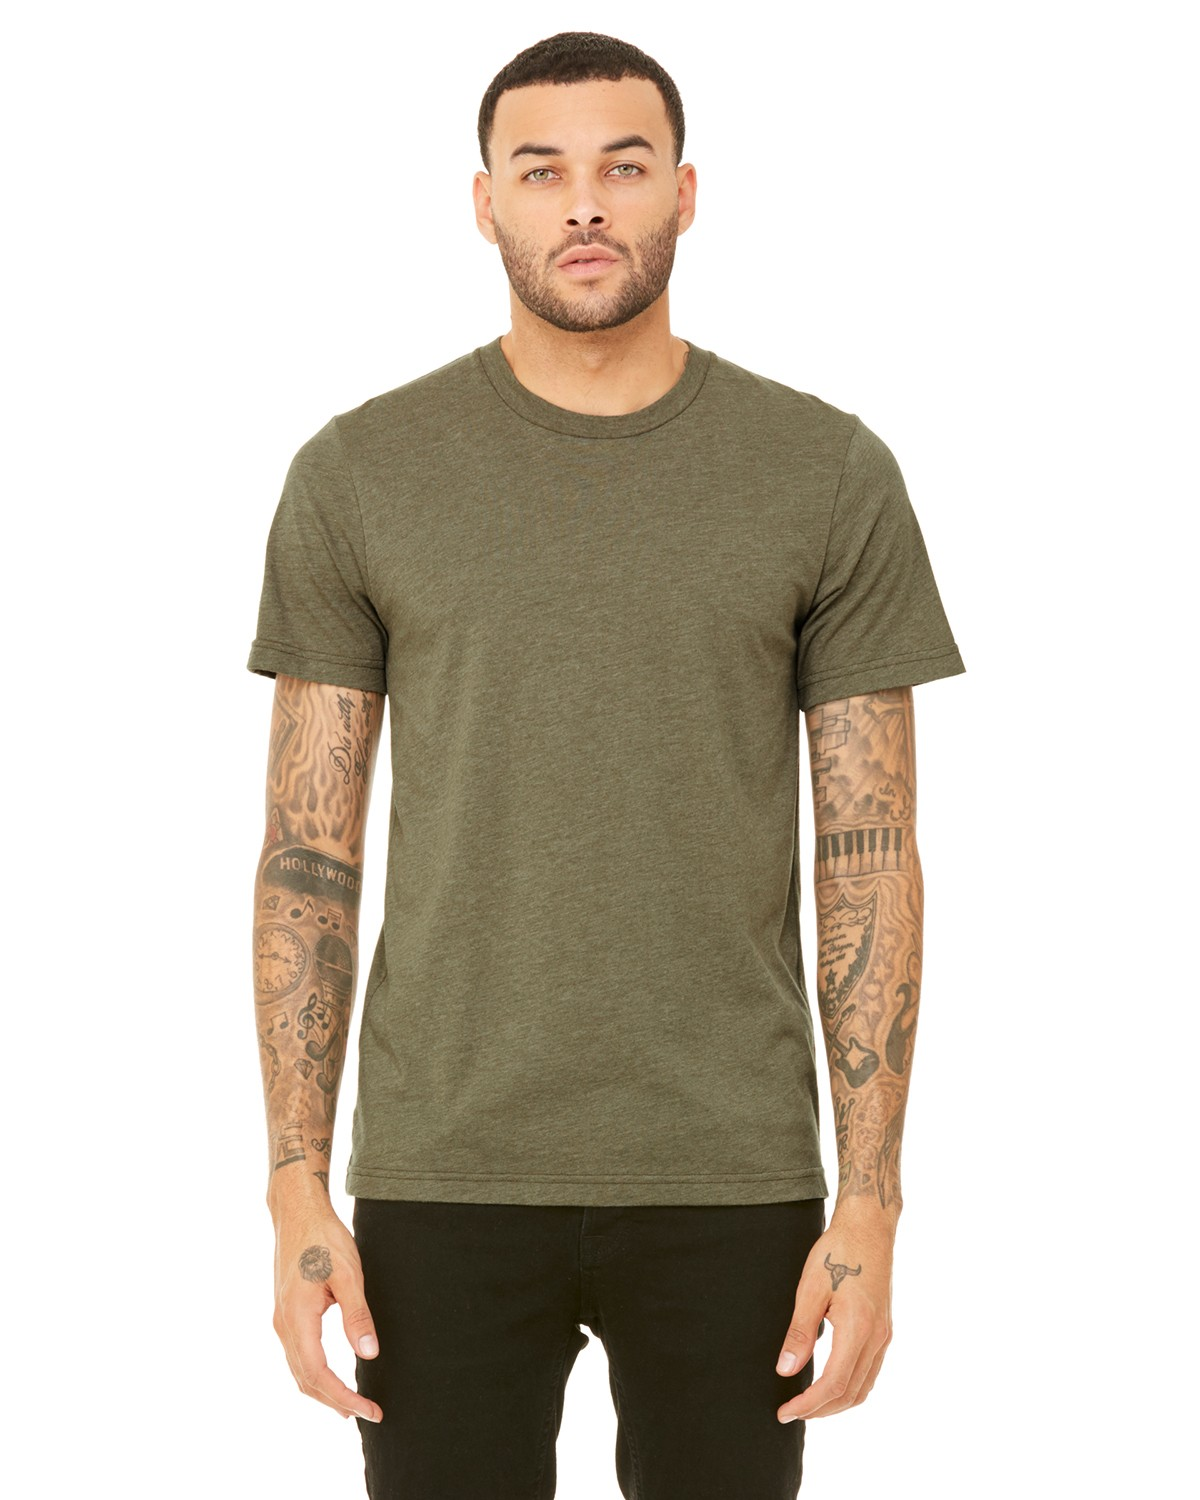 3001C Bella + Canvas HEATHER OLIVE